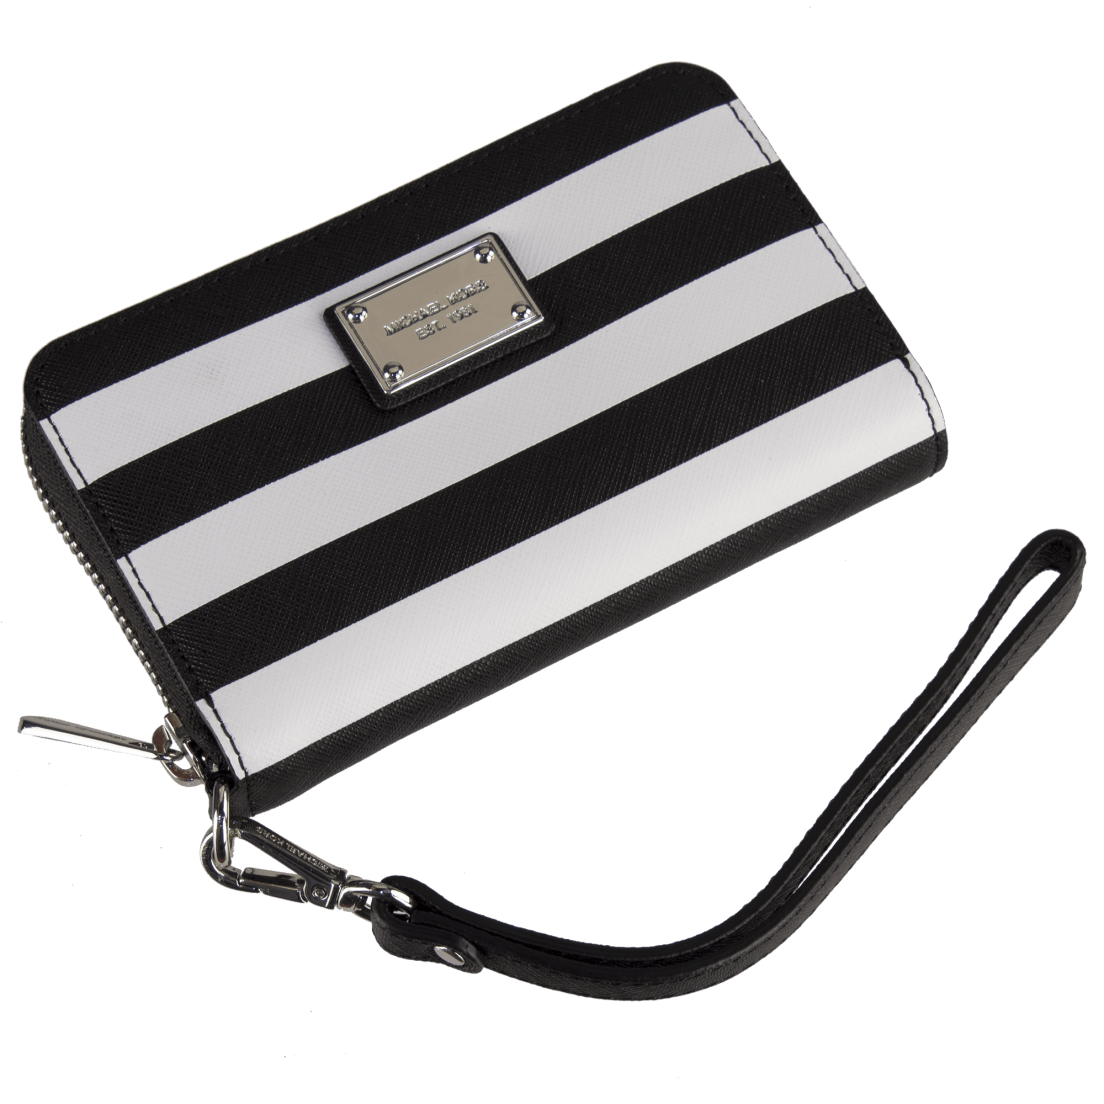 05f7934a3a45 Michael Kors Essential Zip Wallet Black and White Saffiano